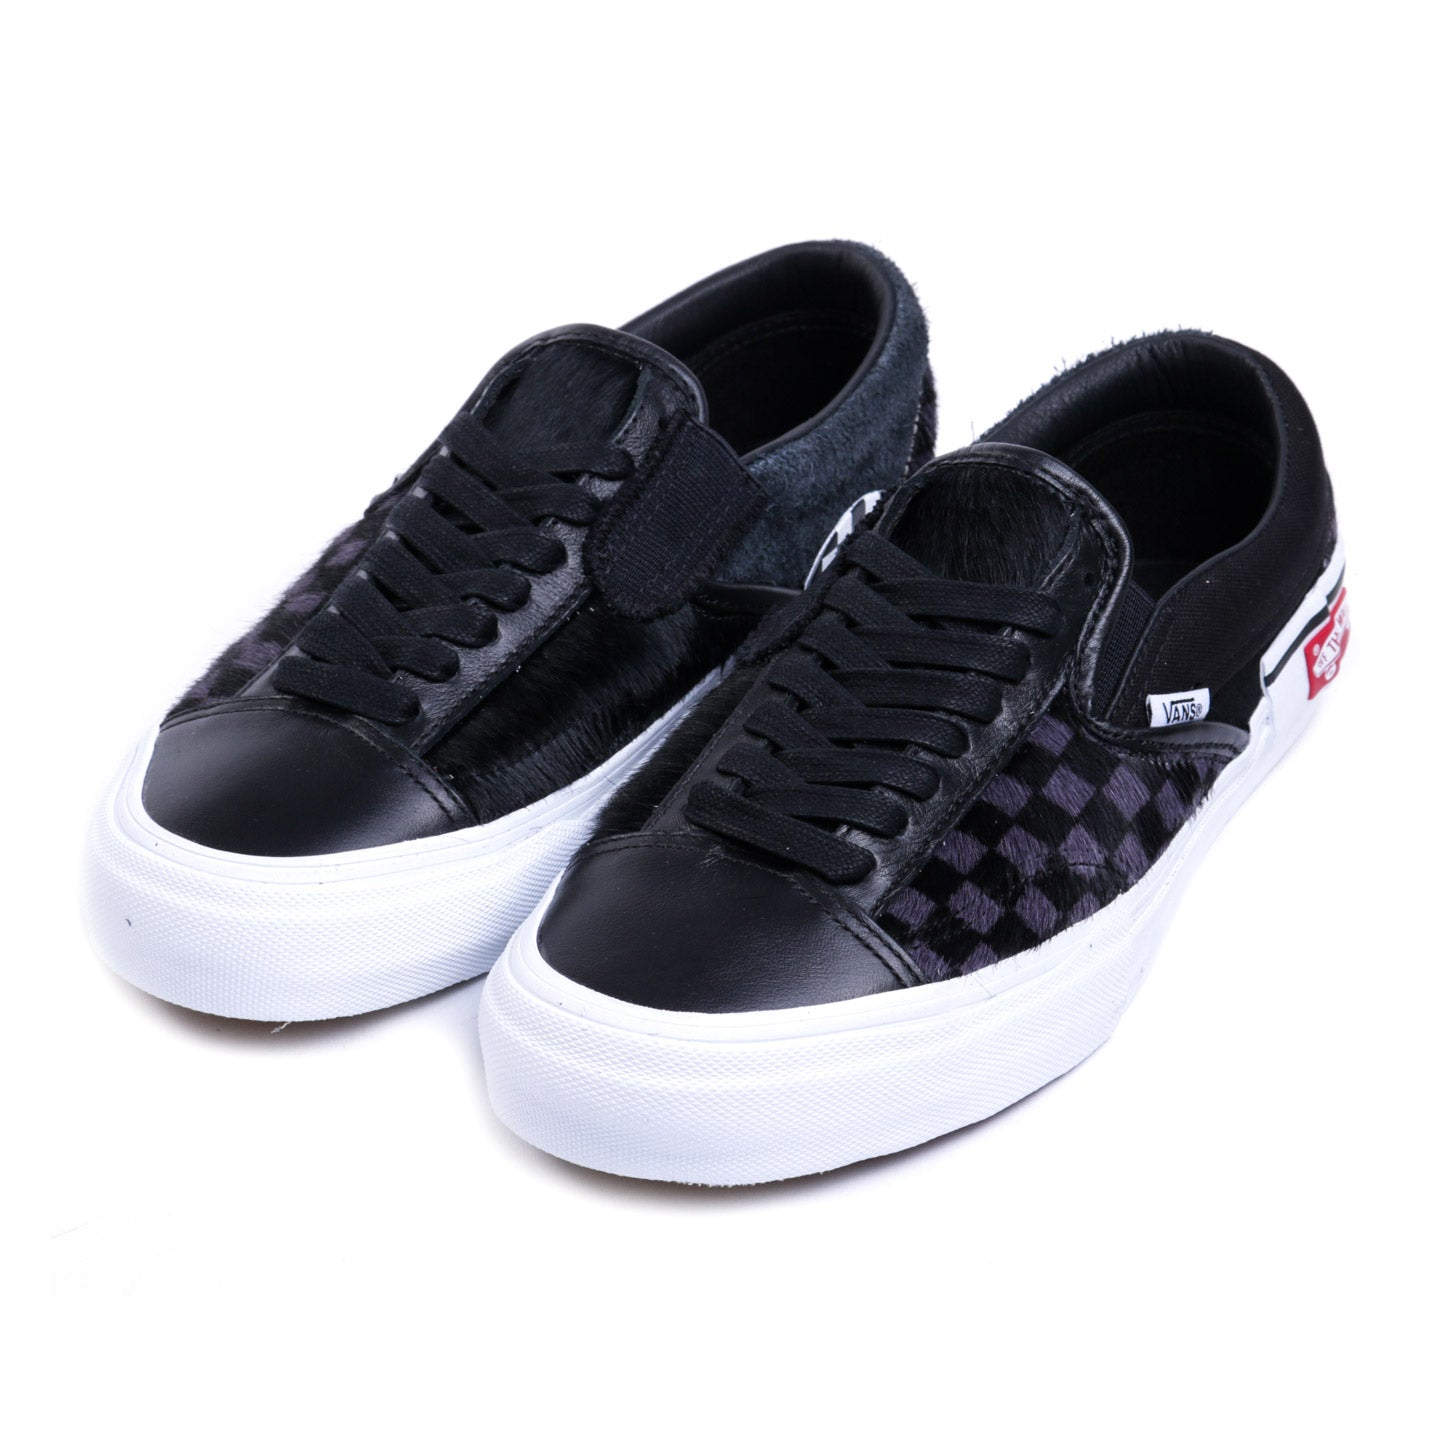 VAULT BY VANS SLIP-ON CAP LX PONY BLACK